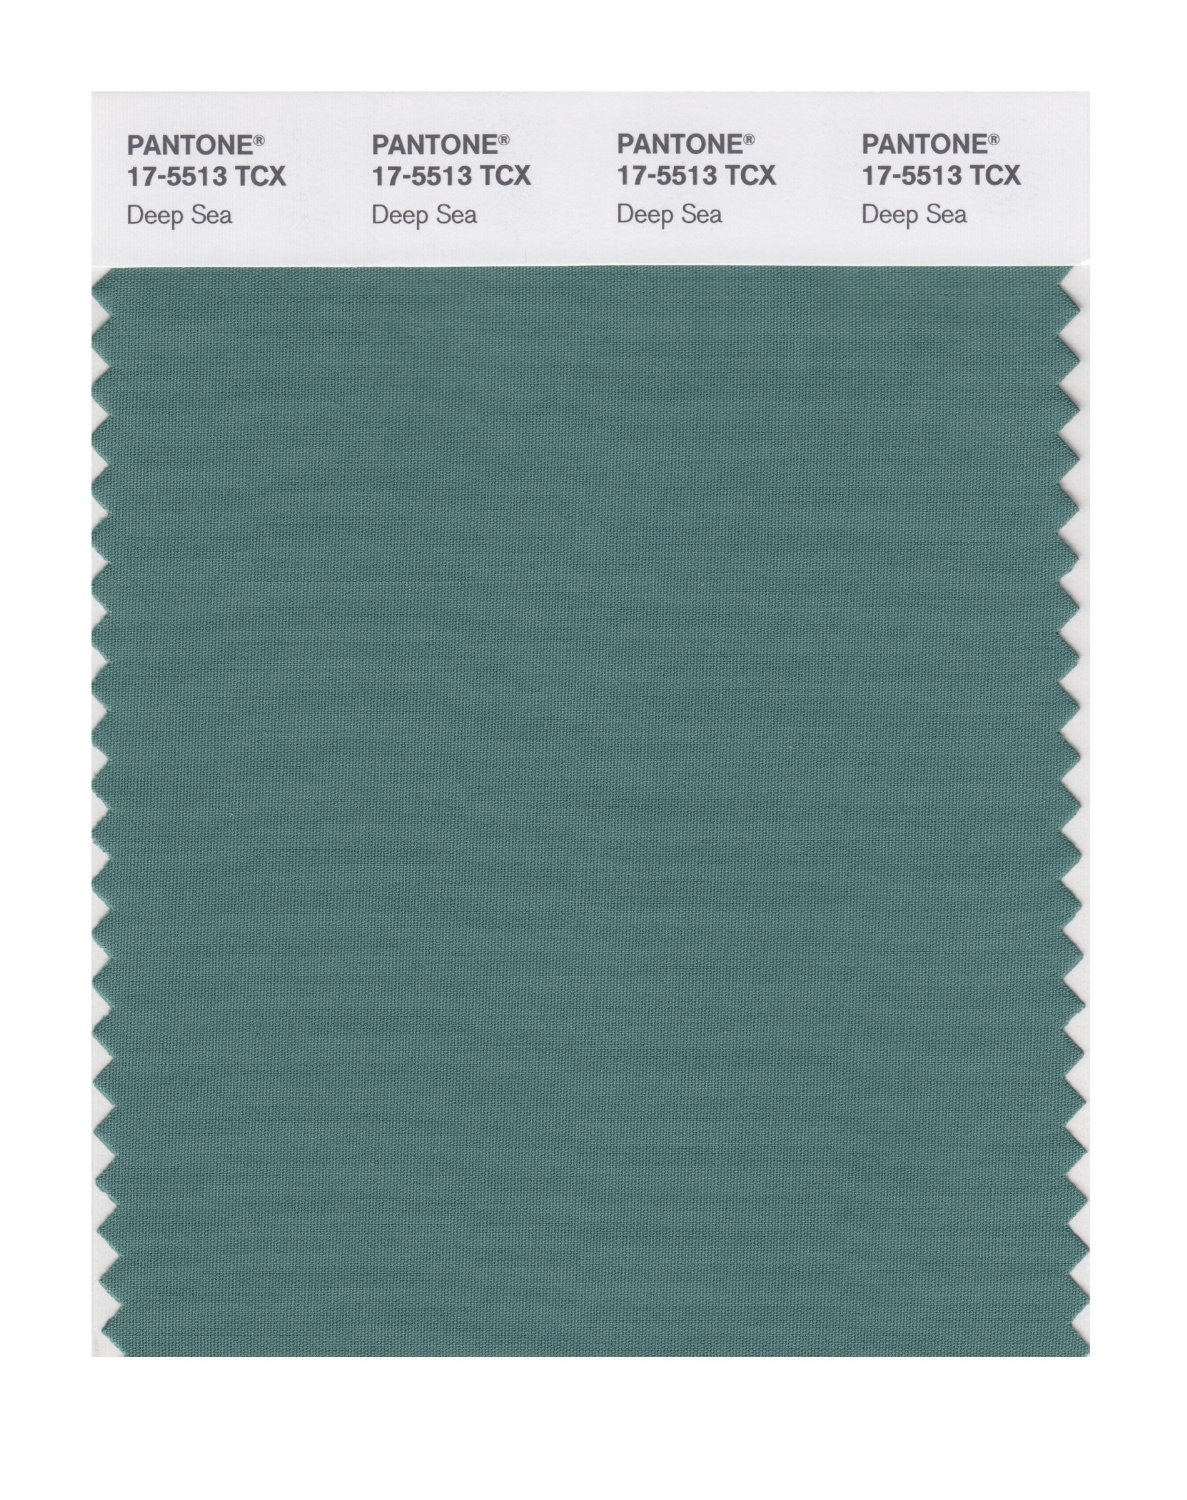 Pantone Smart Swatch 17-5513 Deep Sea